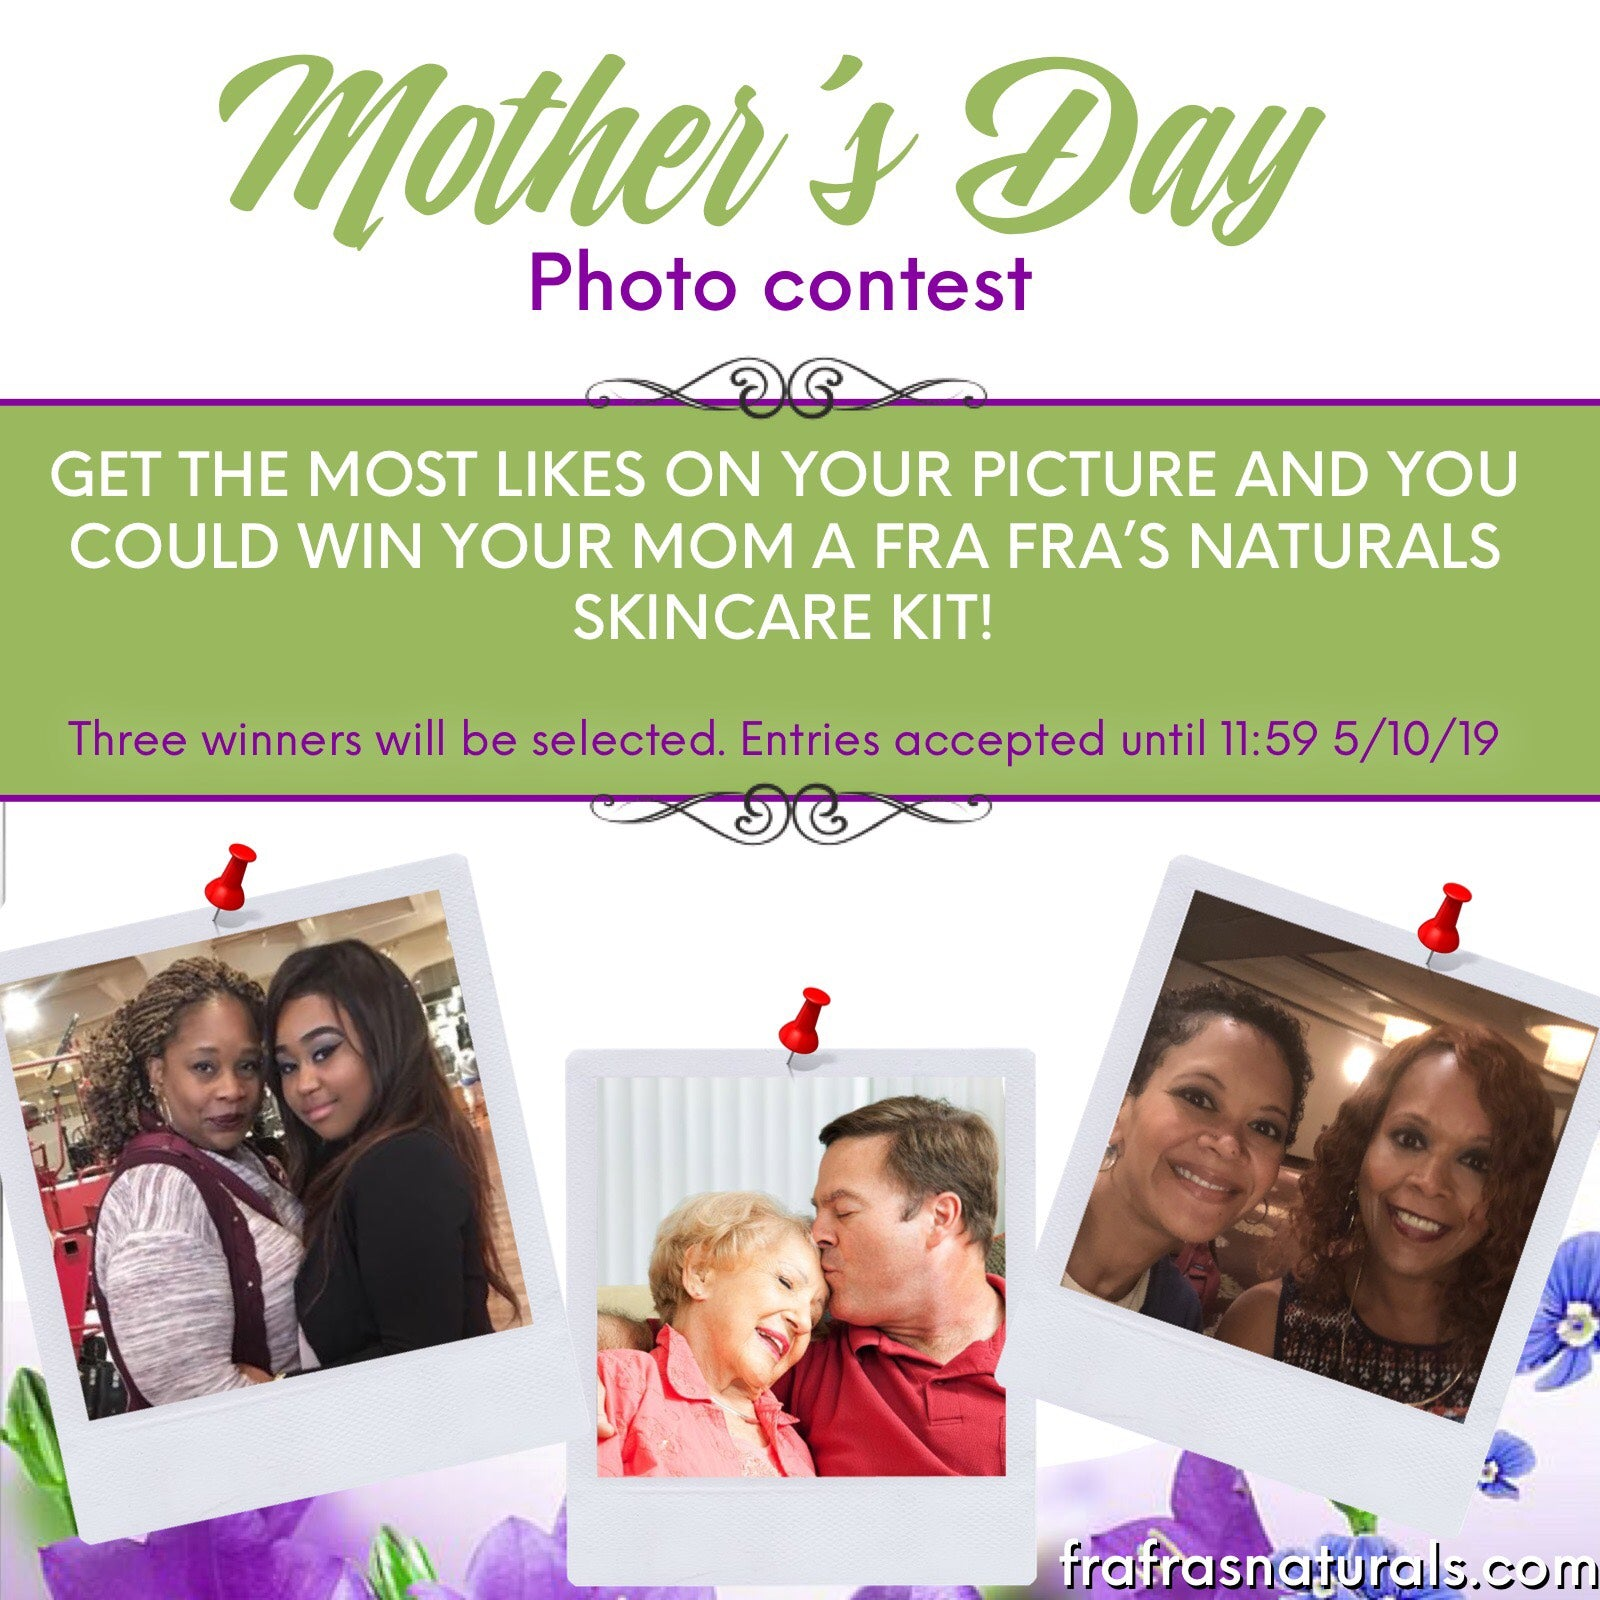 Mother's Day Photo Contest - Enter and win!